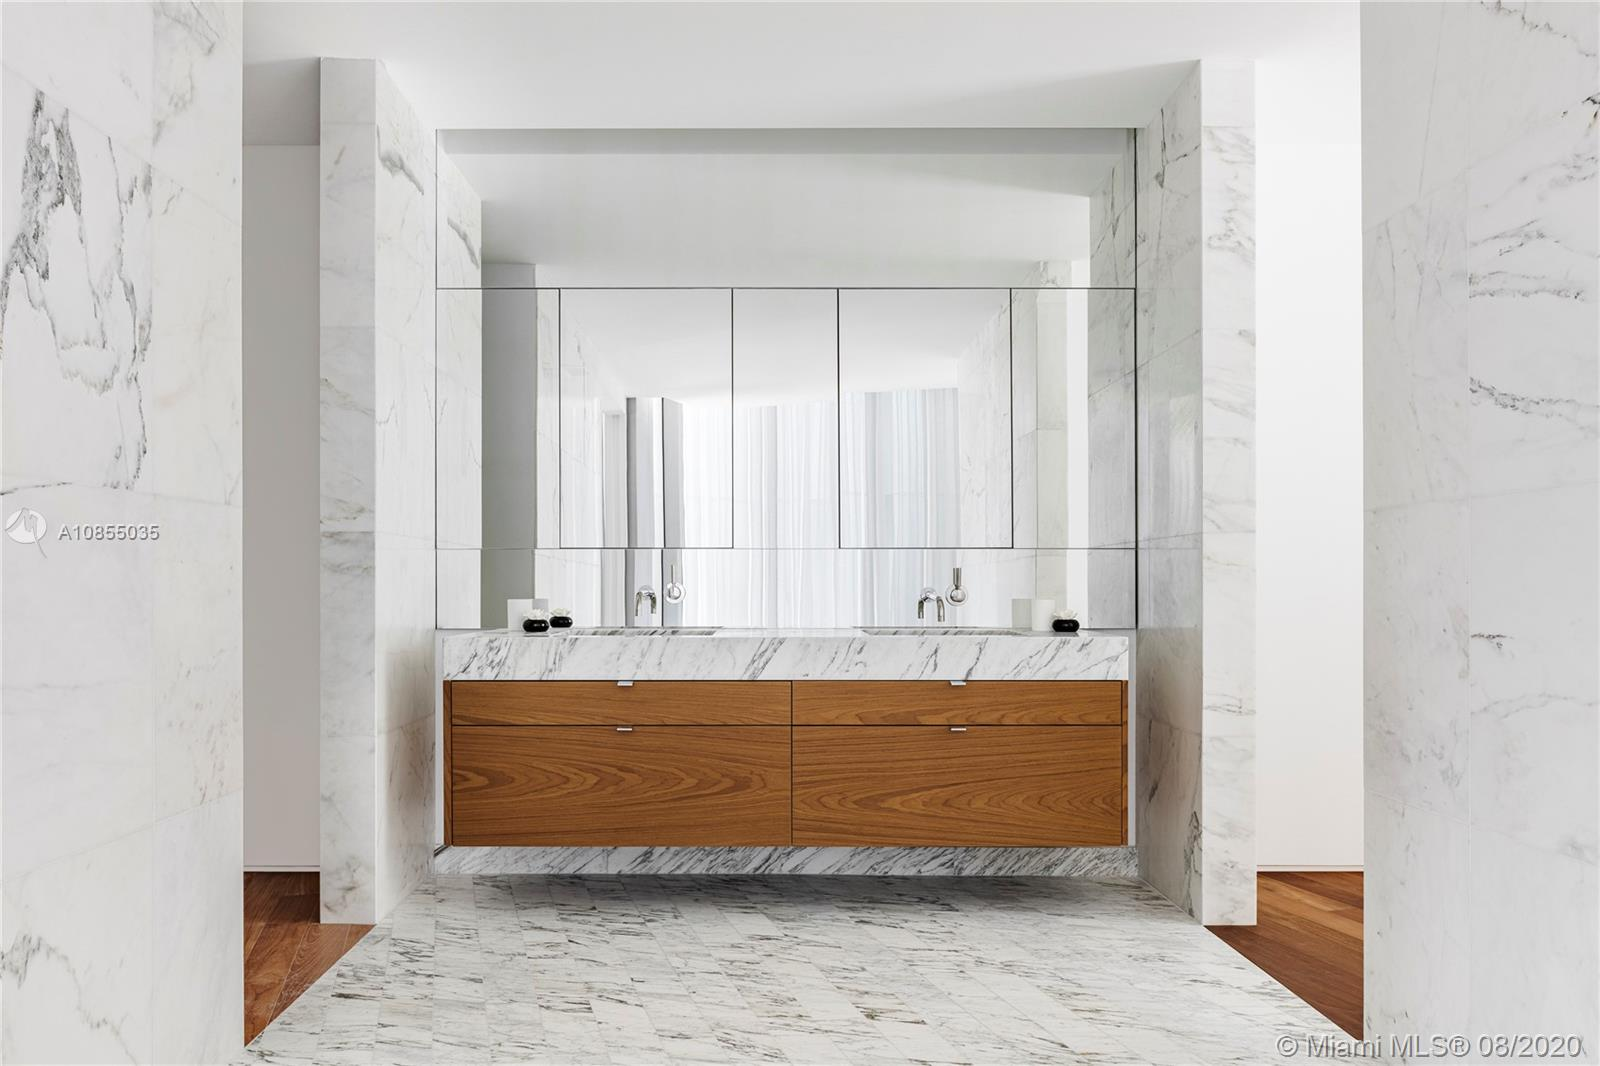 *Composed of 59 individually designed waterfront residences around a glittering lagoon, Monad Terrace by Pritzker Winner, Jean Nouvel, provides brilliant light, private outdoor space, climbing gardens, unique sawtooth honeycomb facades & stunning sunset views of Biscayne Bay. Kitchens with dramatic sculptural cantilevered marble island in Calacatta. Master baths with richly veined, spacious stone countertops, marquetry flooring and tiled walls. Other notable features include custom cabinetry & built-in features, designer fixtures, teak flooring throughout & private elevators. Estimated delivery in 2020. Images are from Model Residence or Artist Rendering.